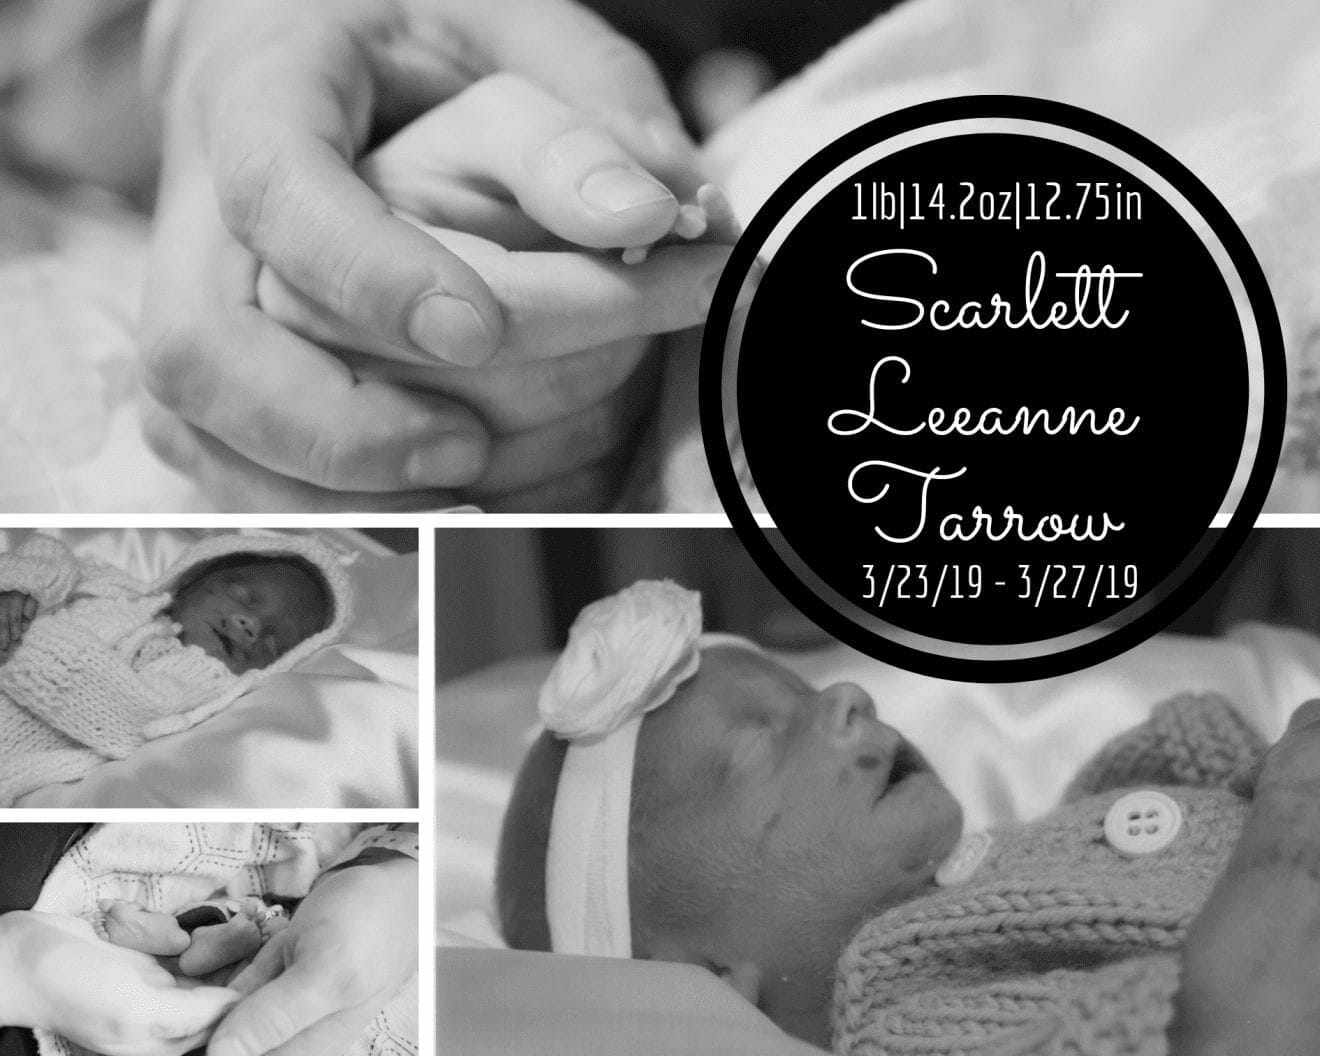 Example of graphics Scarlett's mother Jillian creates for other bereaved parents